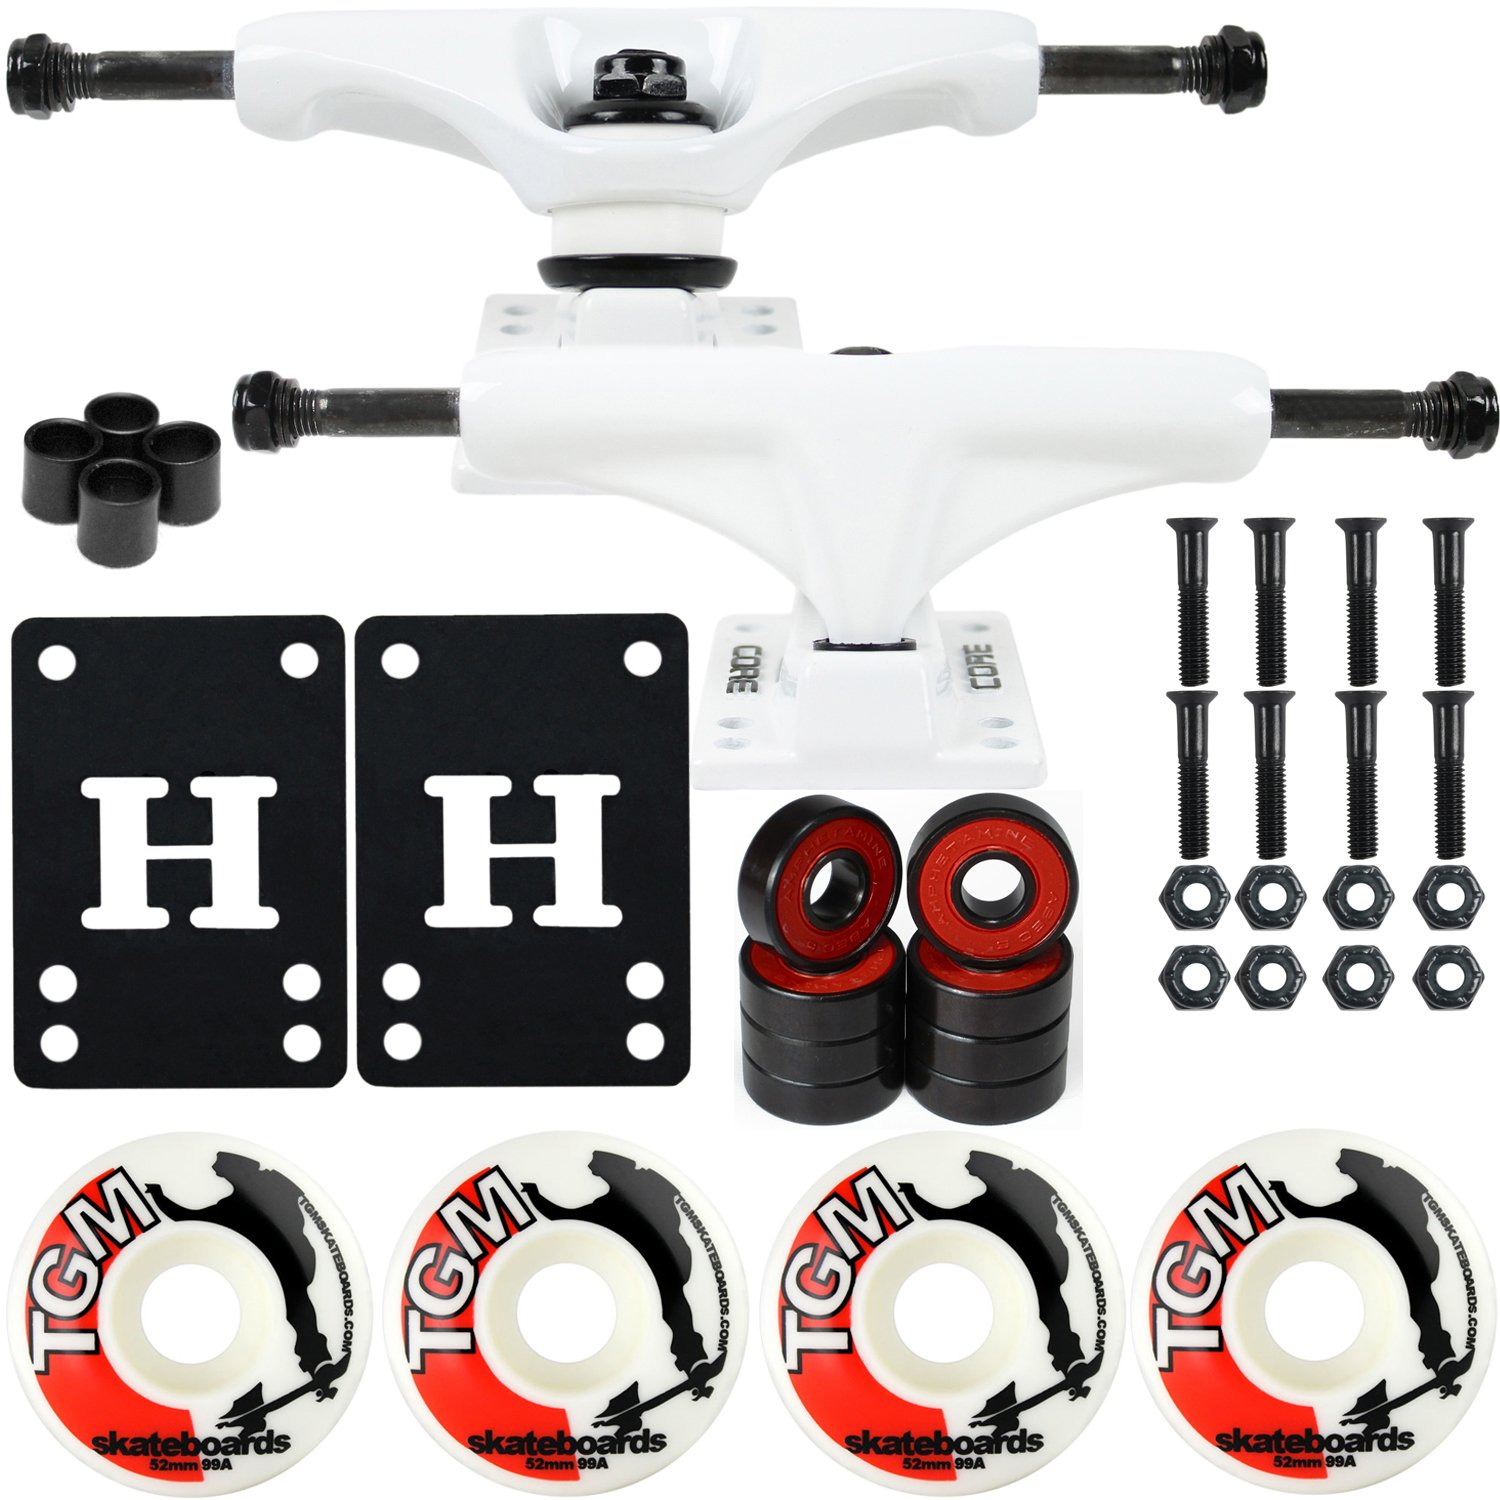 CORE Skateboard Package 5.0'' Trucks 52mm with White Wheels + Components (White Hanger/White Base) by CORE